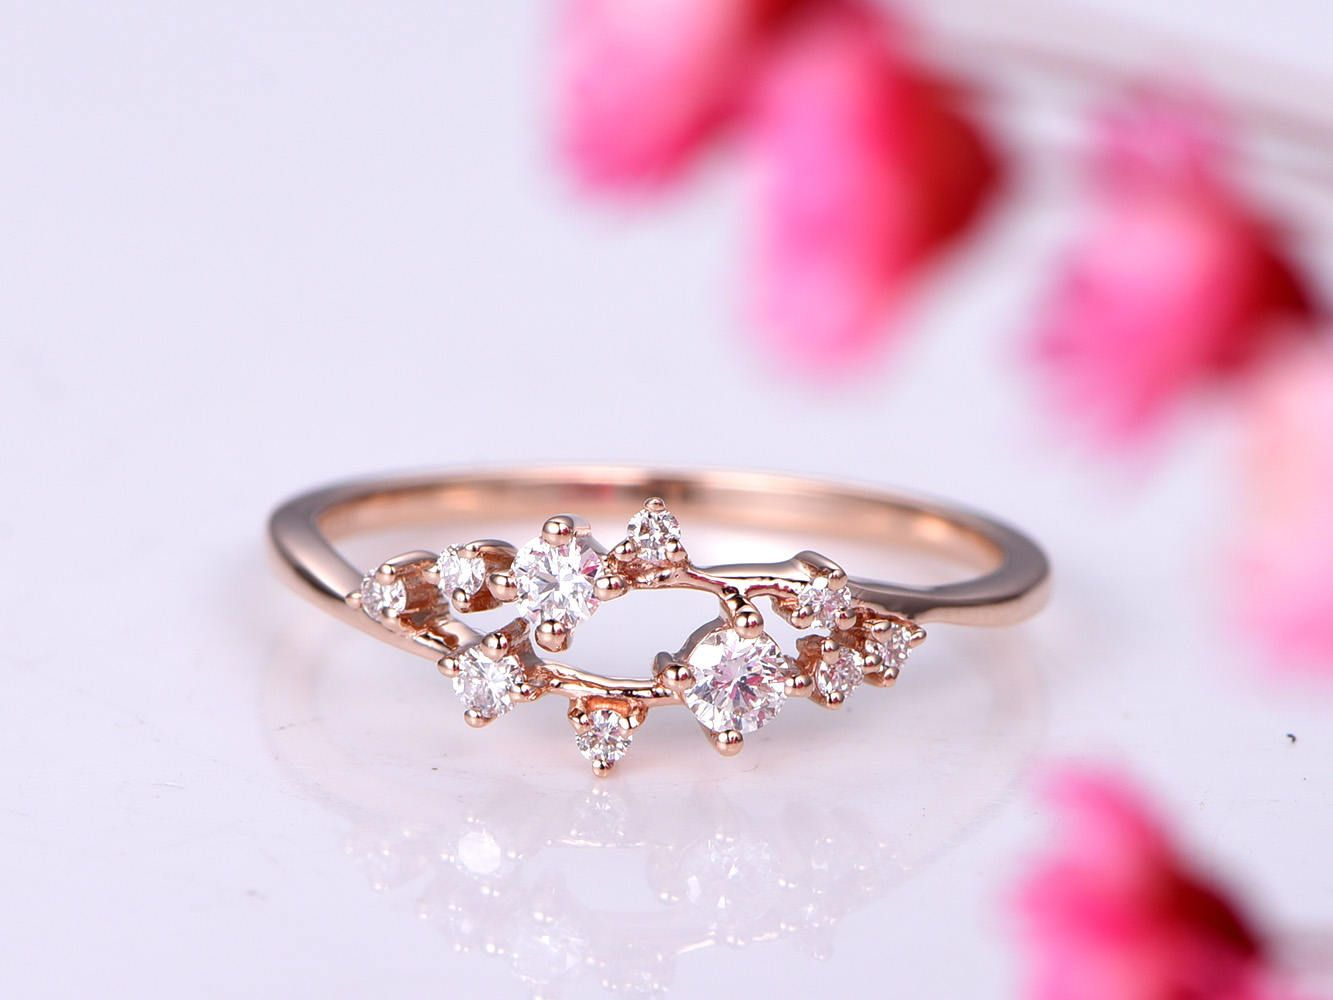 Diamond ring diamond engagement ring wedding band sakua design ...